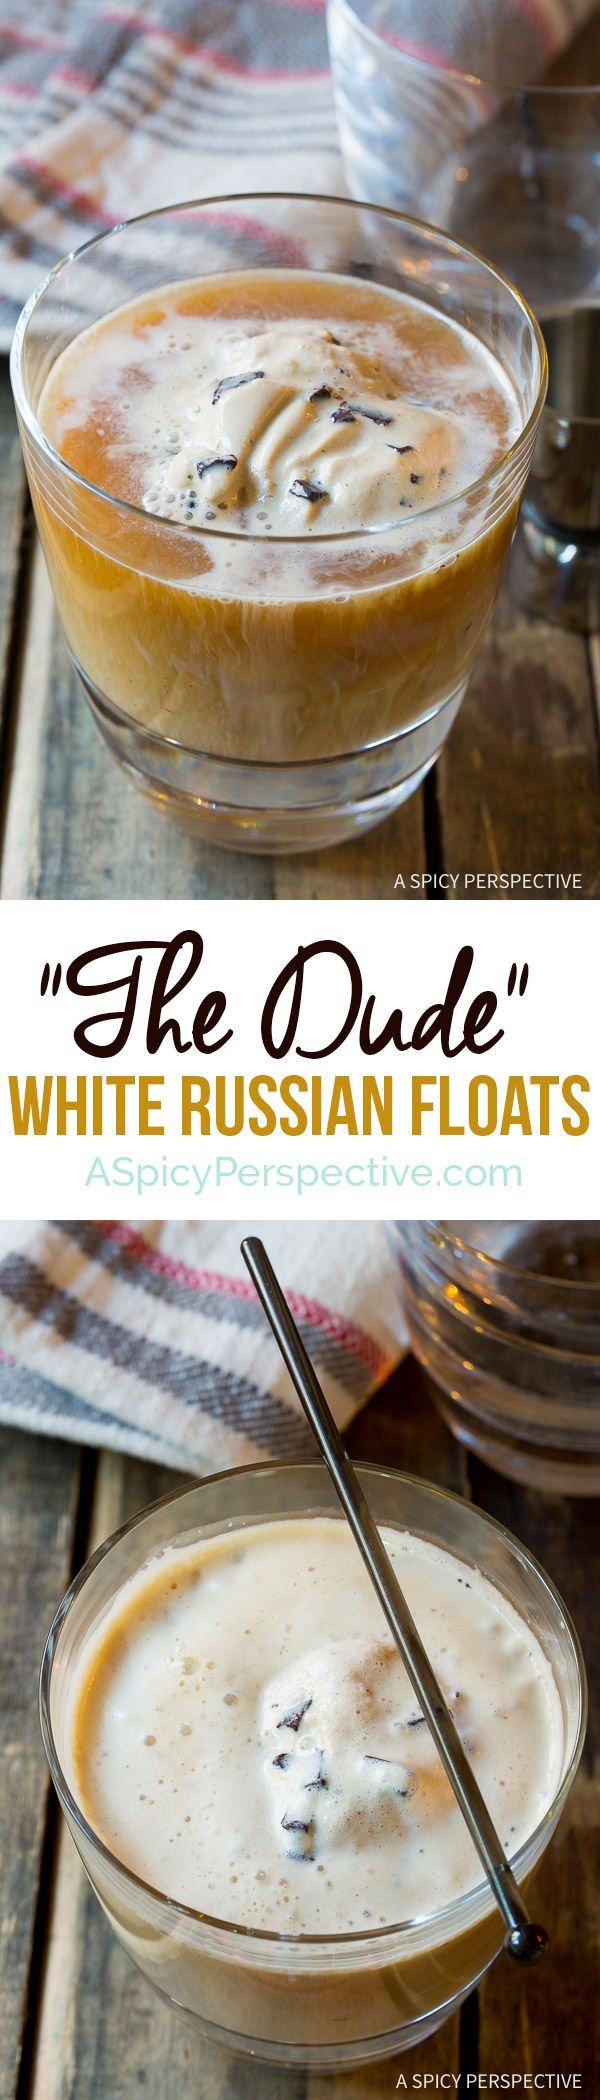 """Celebrate the season with """"The Dude"""" White Russian Floats on ASpicyPerspective.com #holiday #cocktail"""